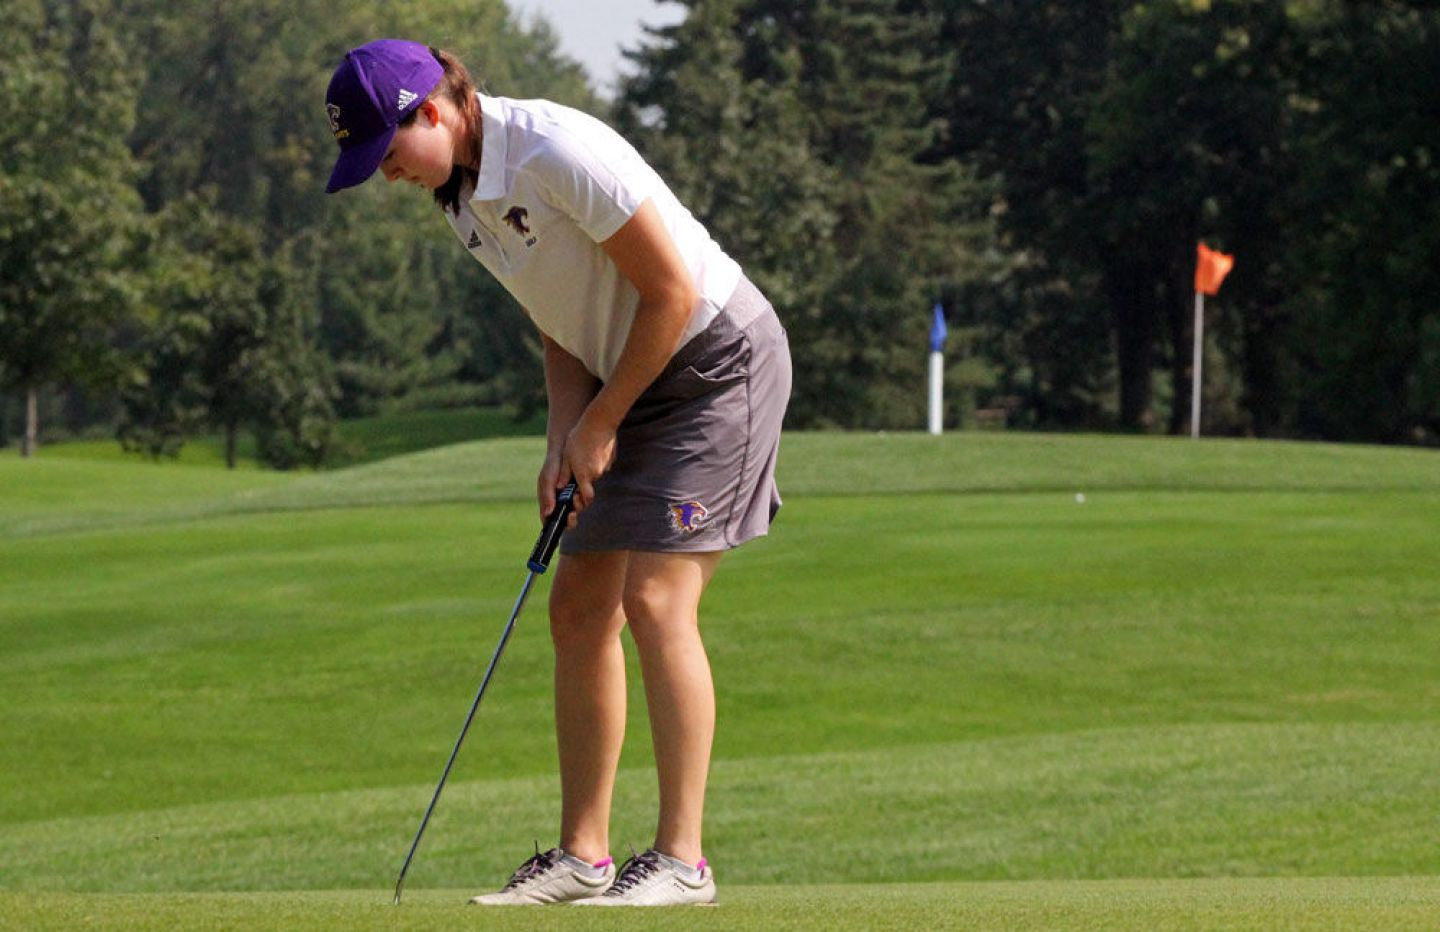 Athlete of the Week (September 11, 2017): Sydney Busker '19 made history on the opening day of the Wartburg Invitational, as she became the first golfer in program history to shoot under par in a single round of a tournament. Photo by Kylie Macziewski '18